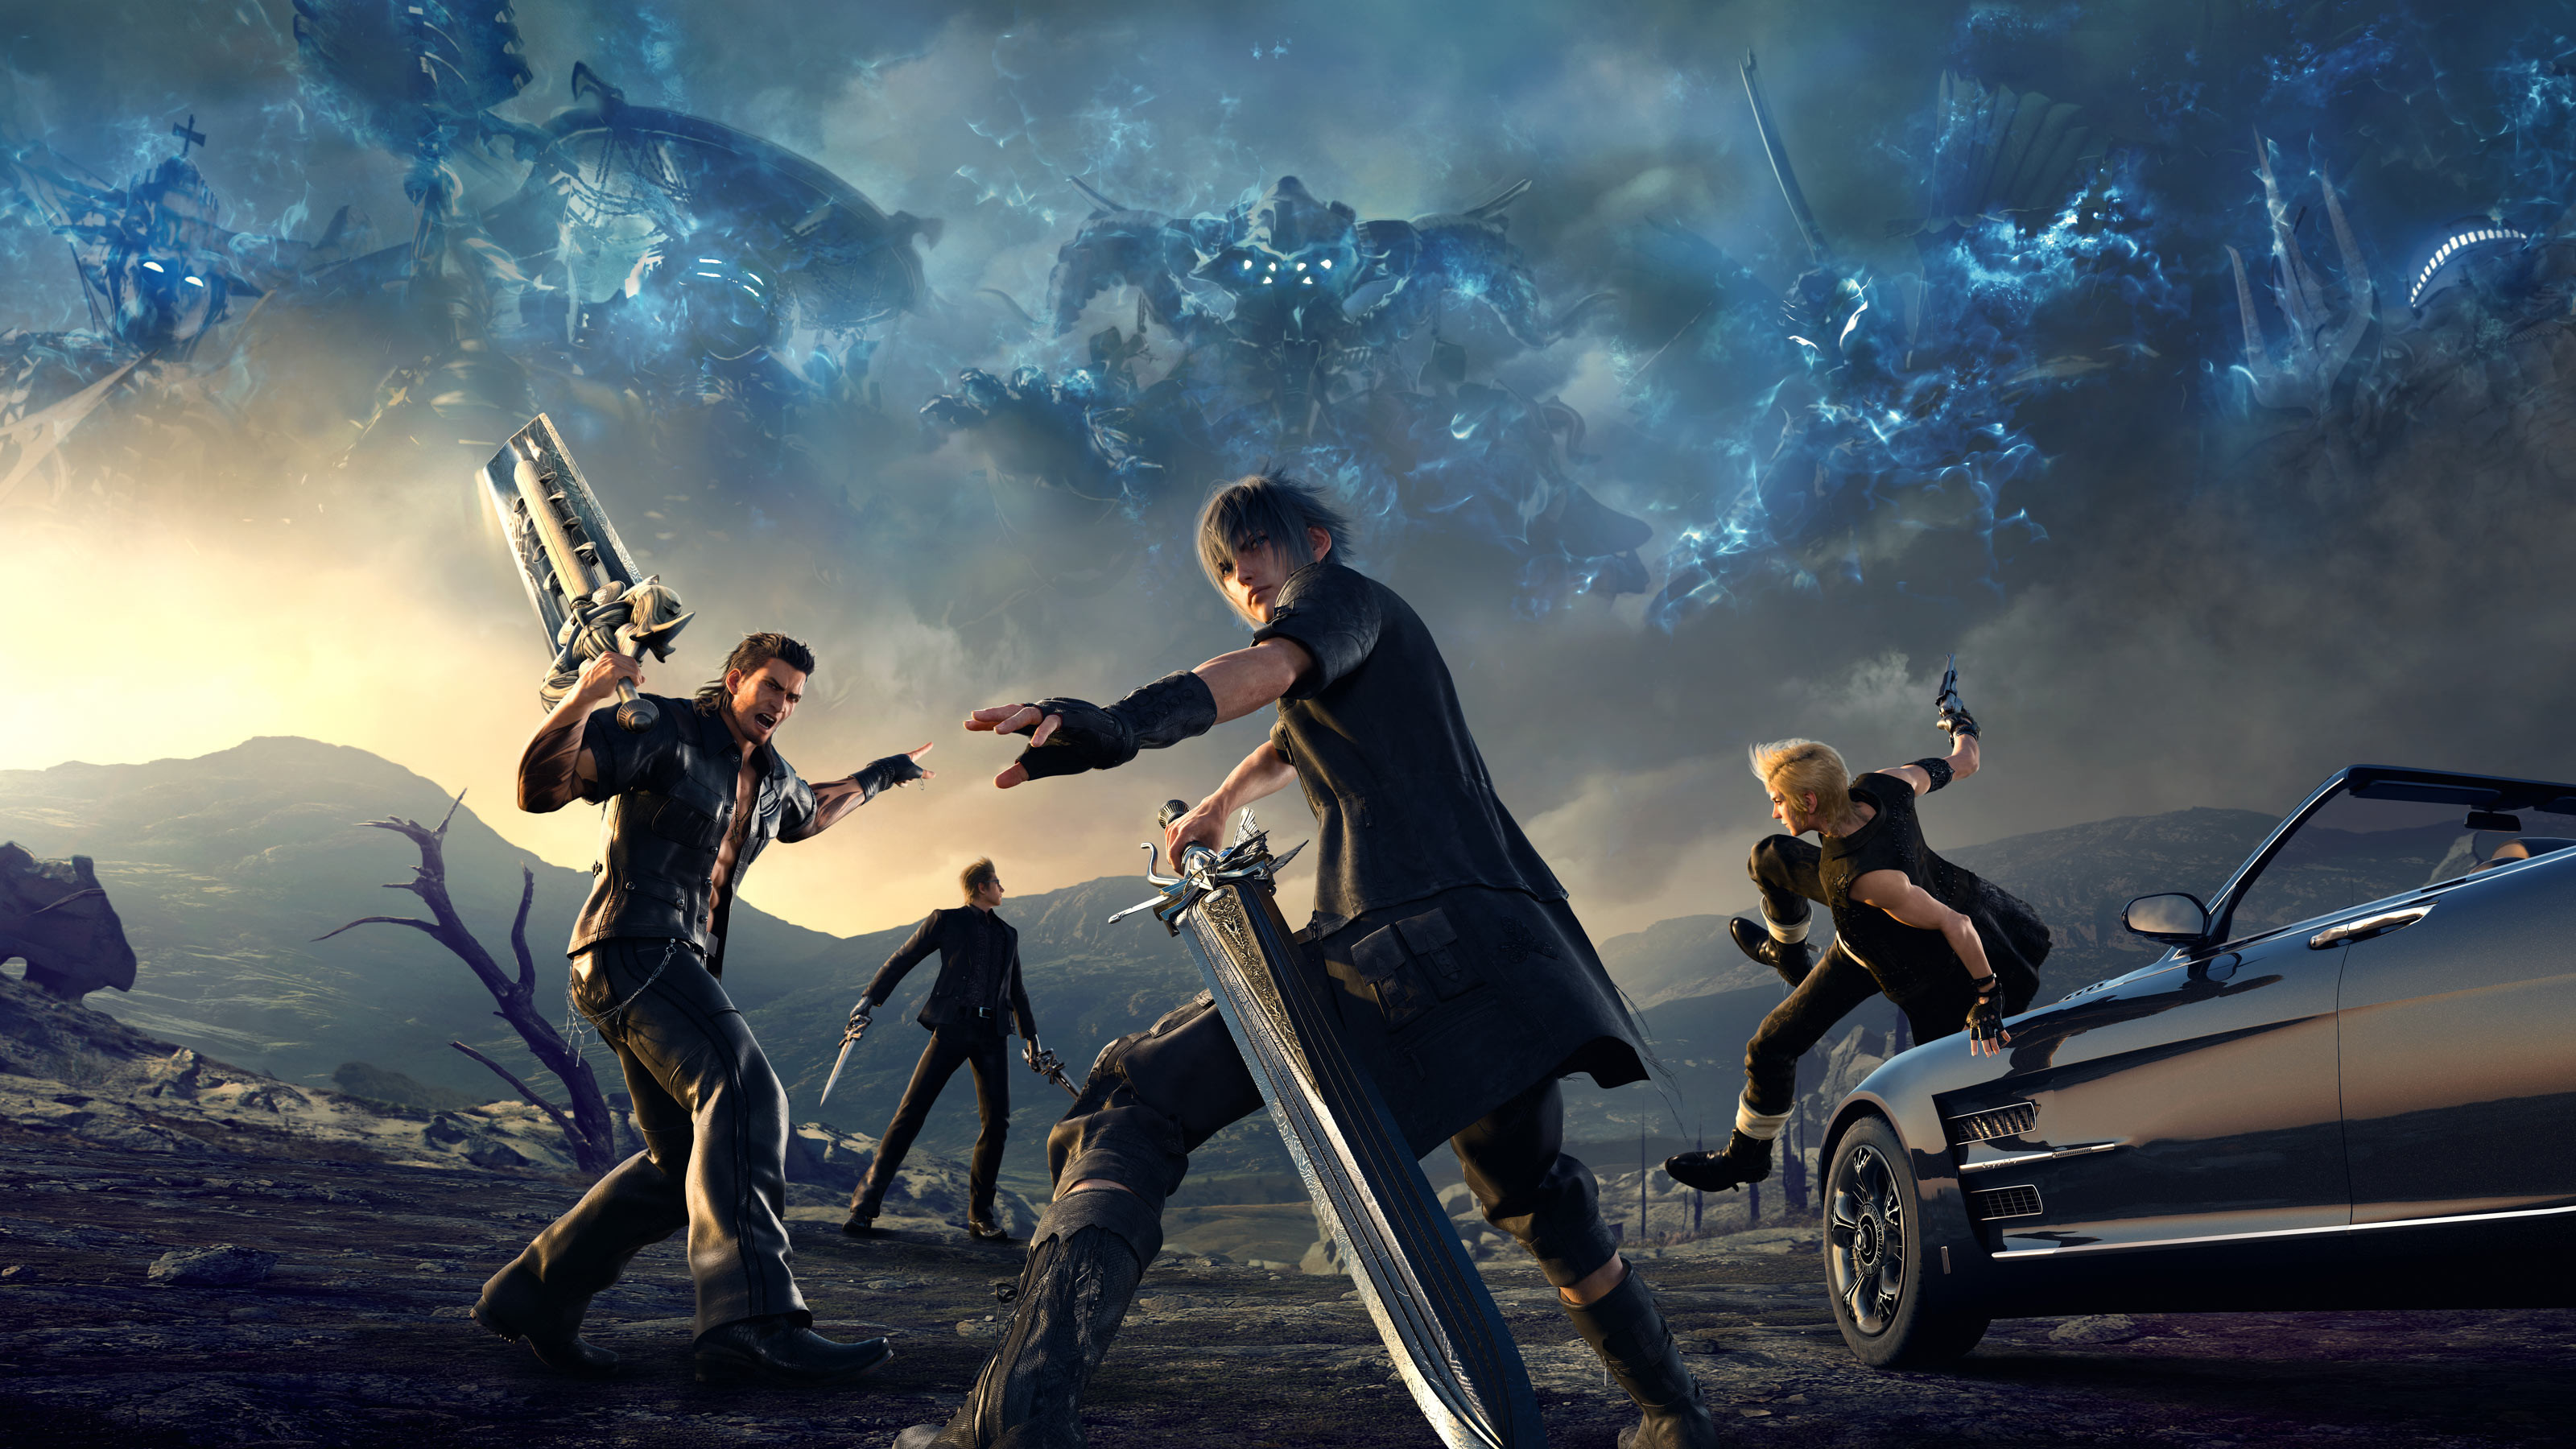 Final Fantasy Xv Wallpapers Wallpapertag